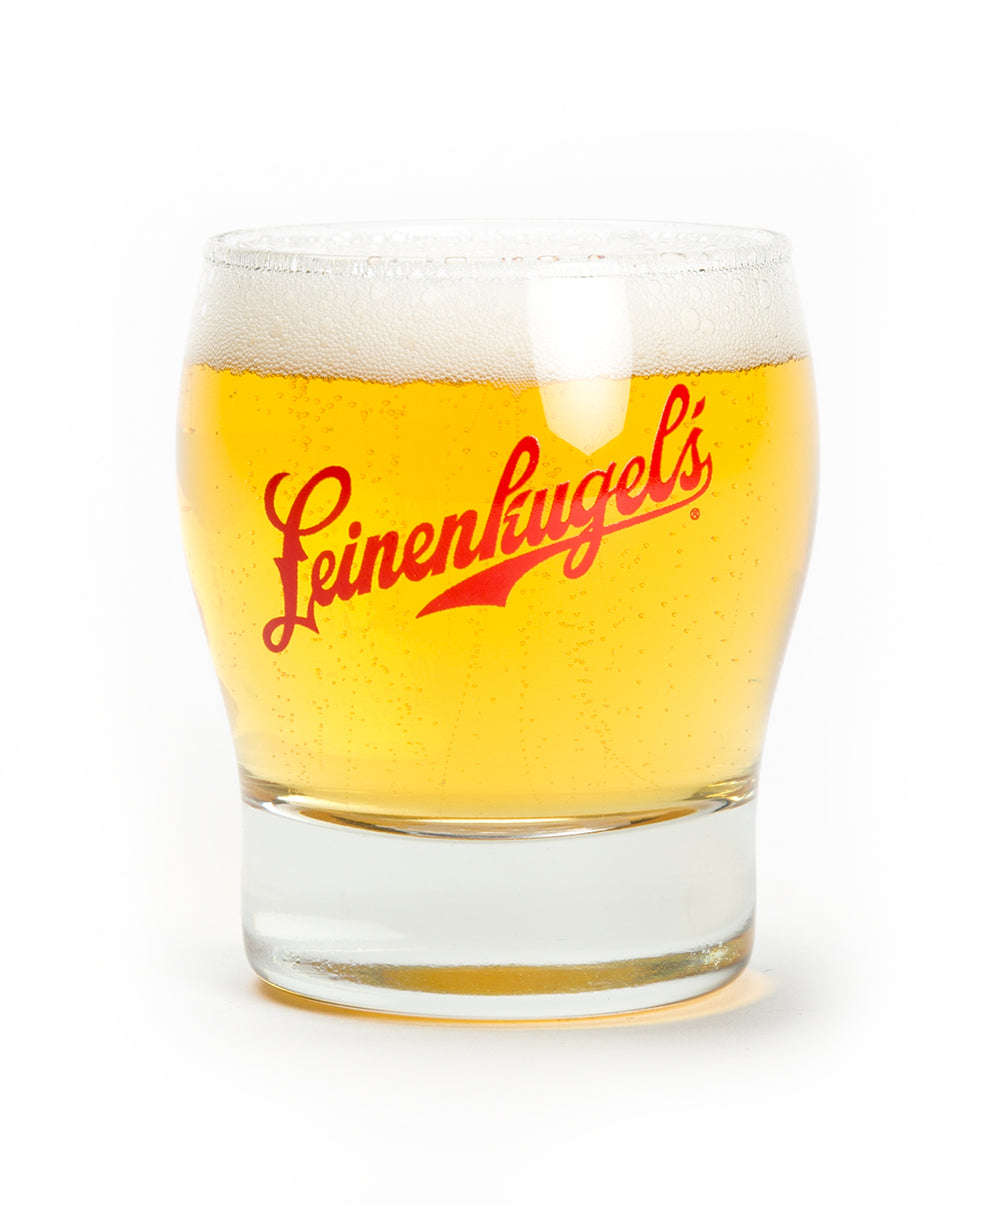 7 OZ LEINENKUGEL SAMPLNG GLASS